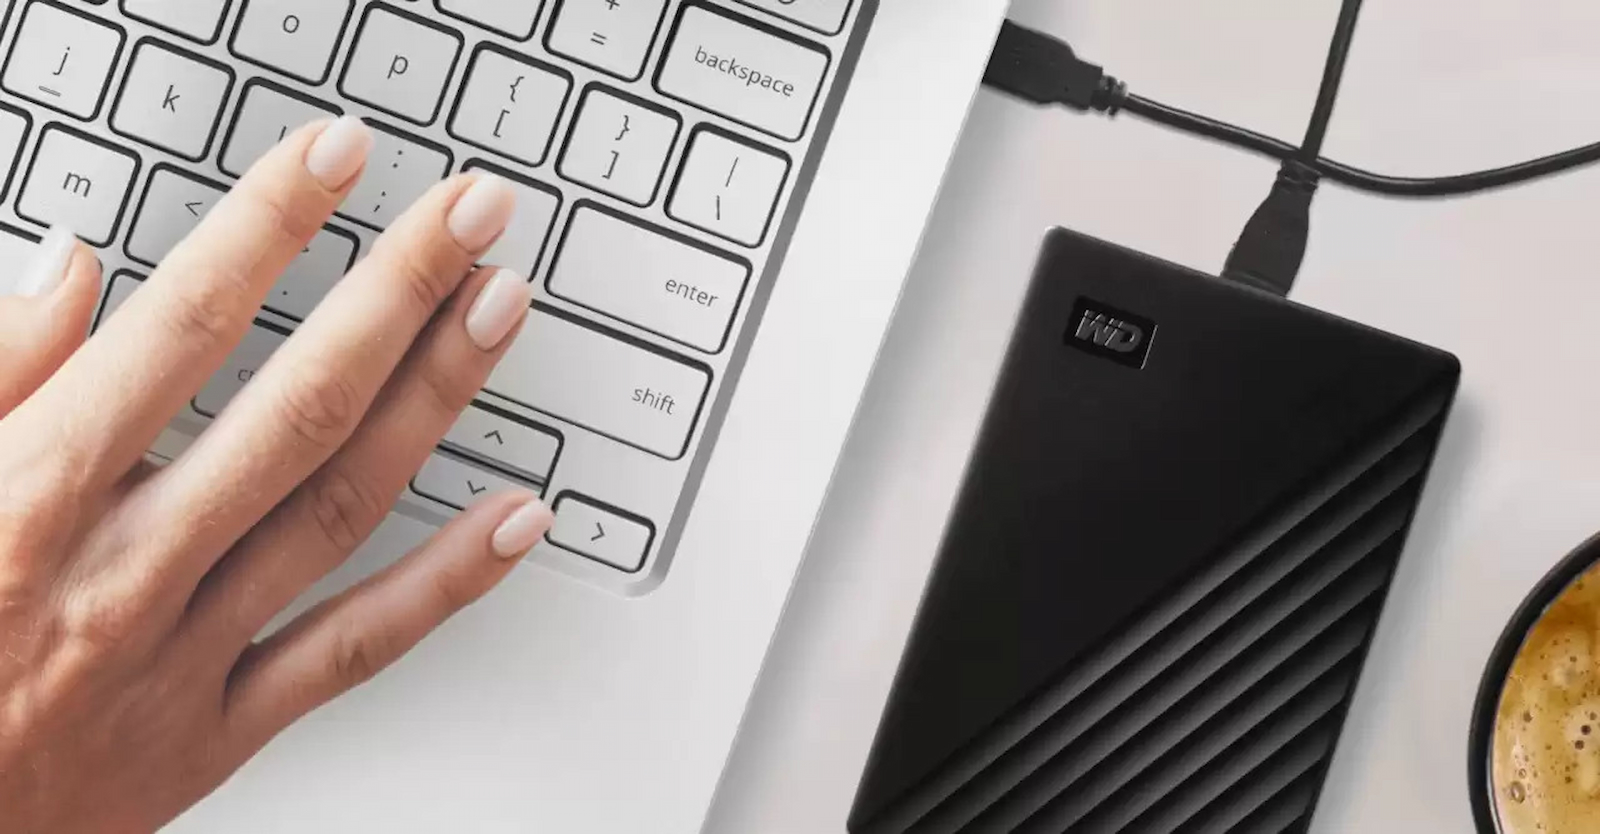 Take 15% off select Western Digital products with Chromebook Perks